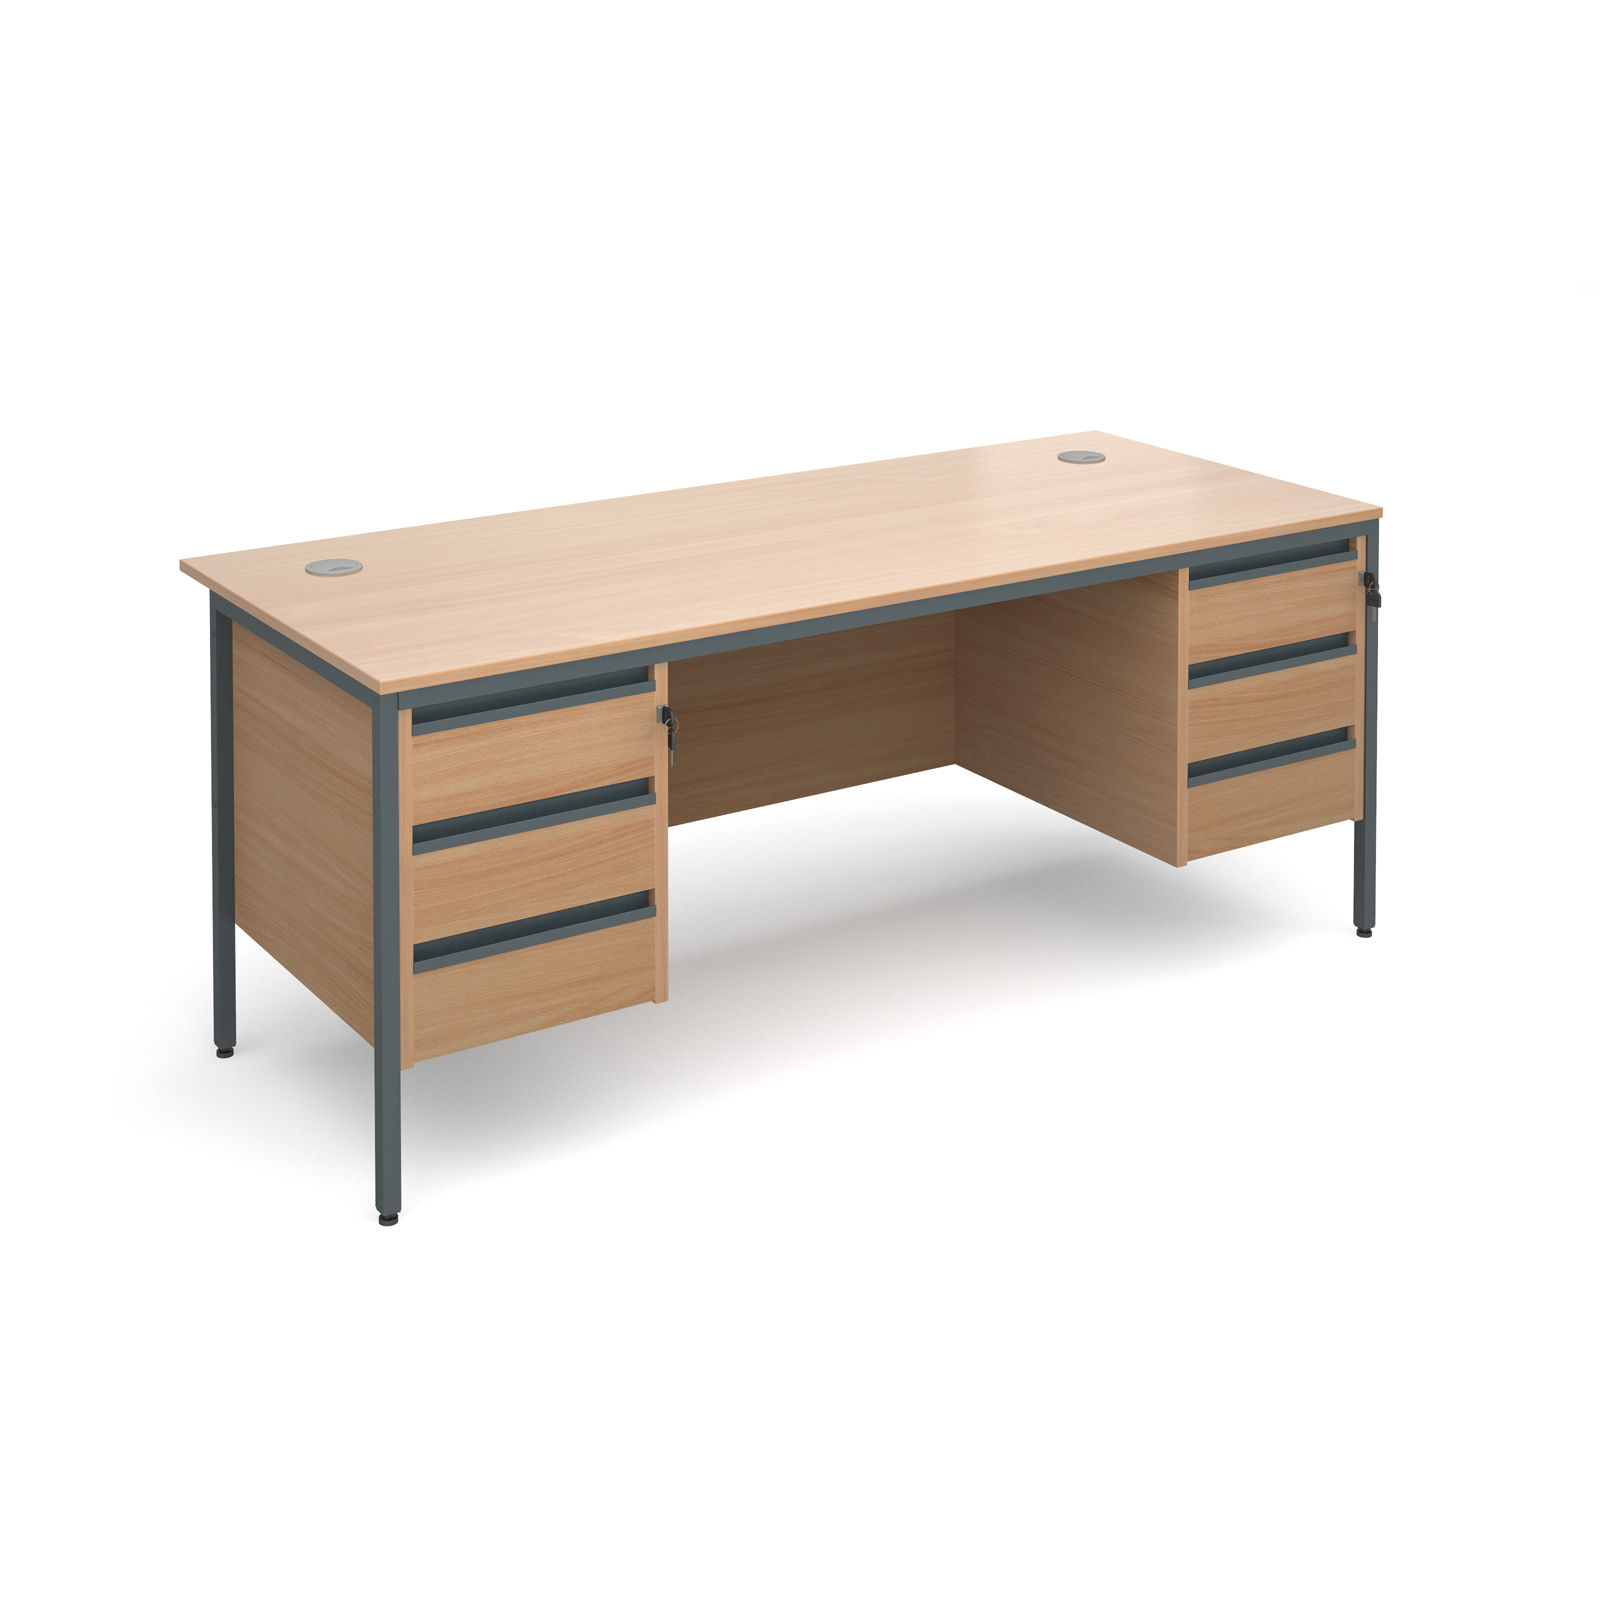 Maestro H frame straight desk with 3 and 3 drawer pedestals 1786mm - beech